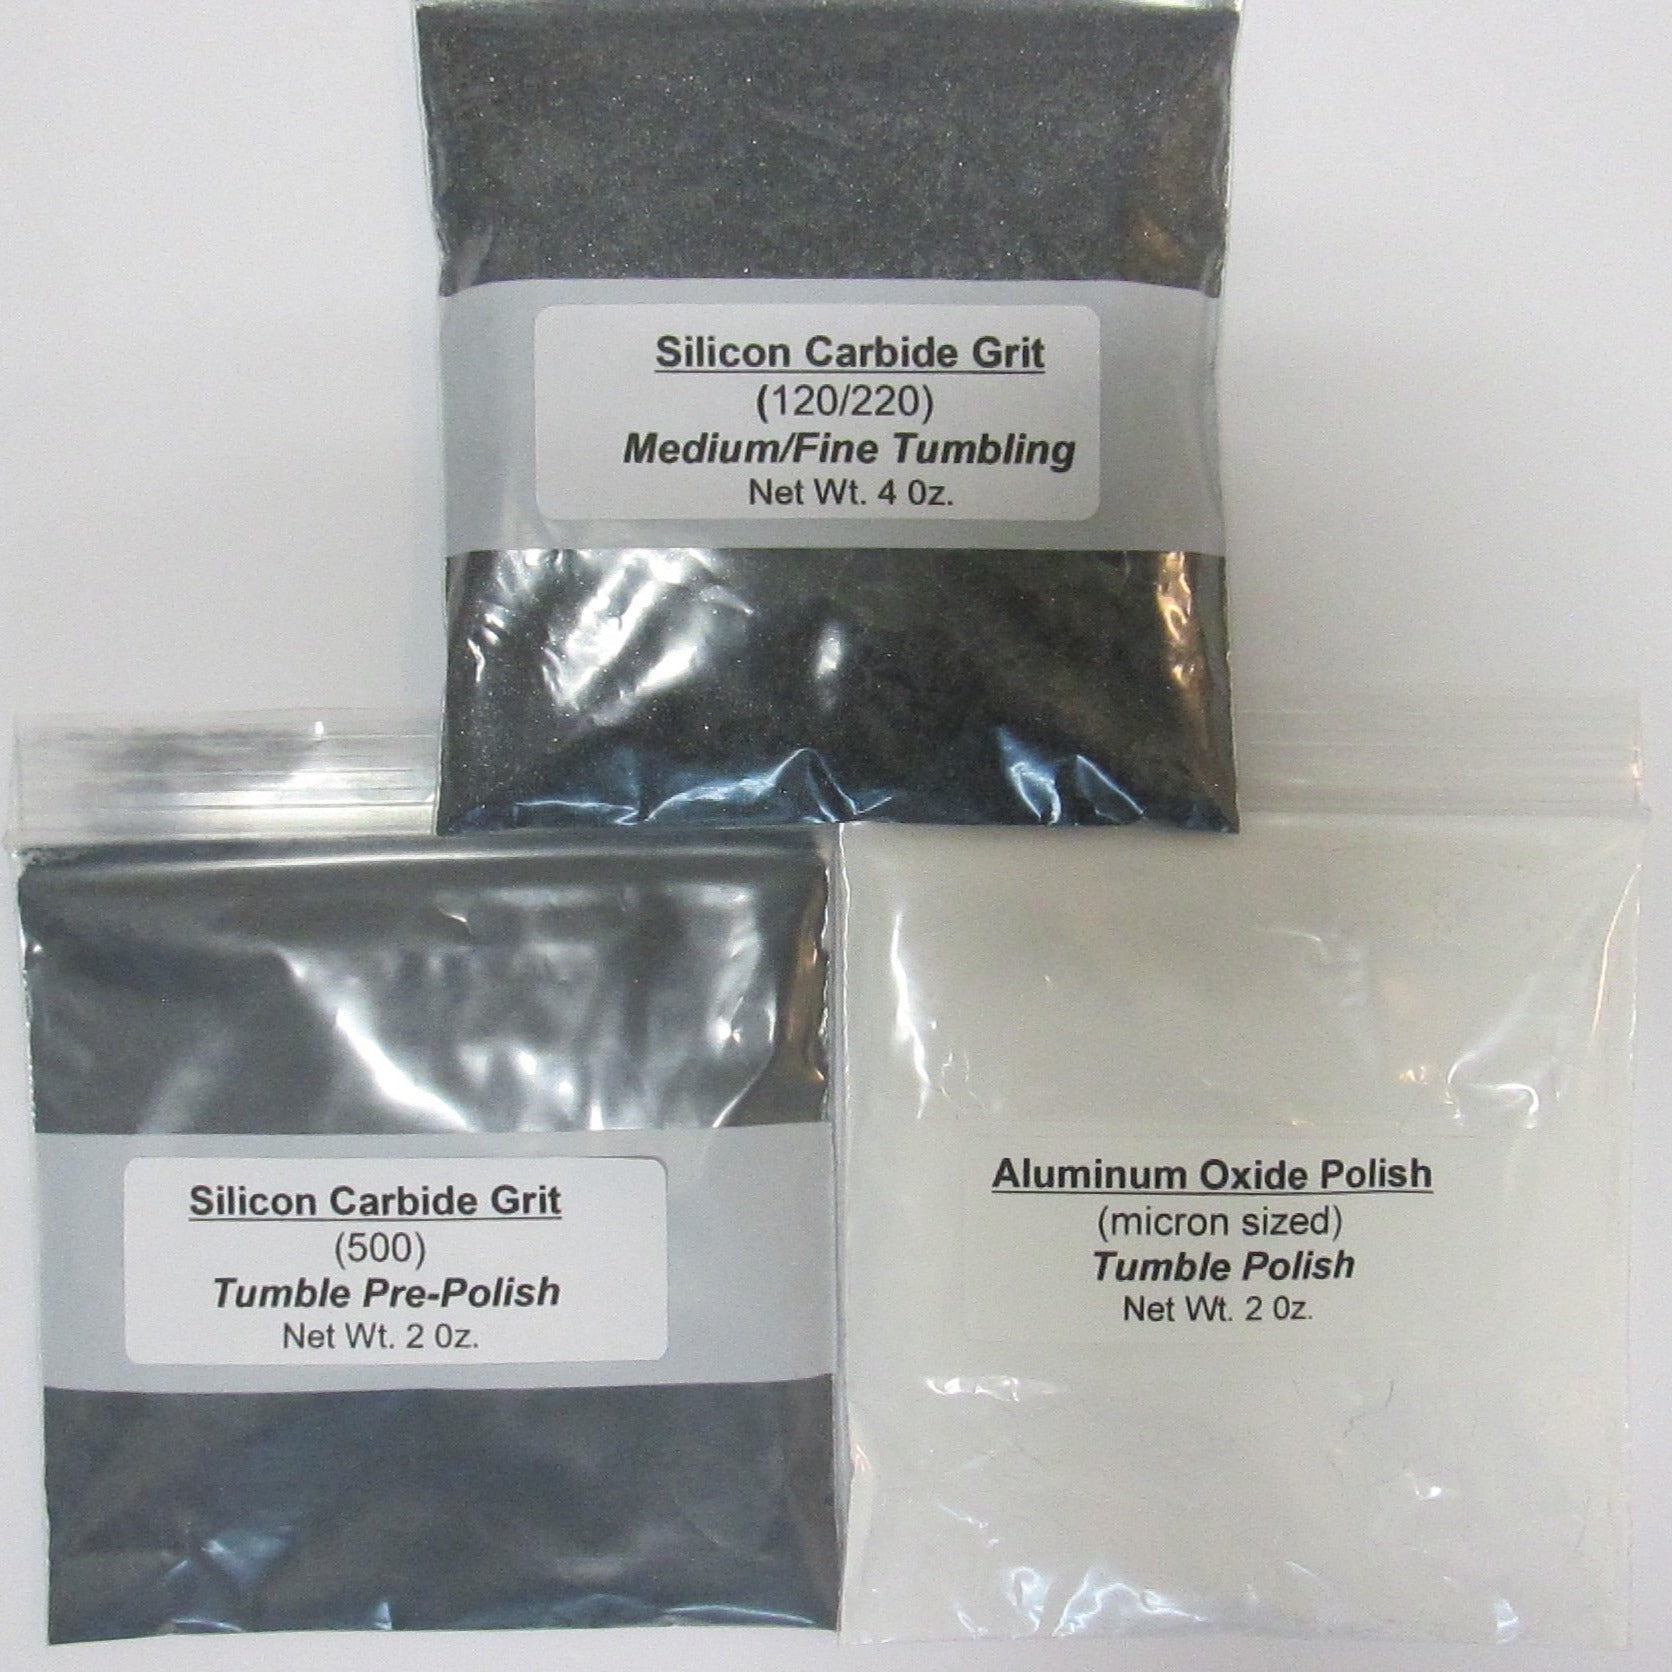 Vibratory tumbler grit kit with silicon carbide, aluminum oxide